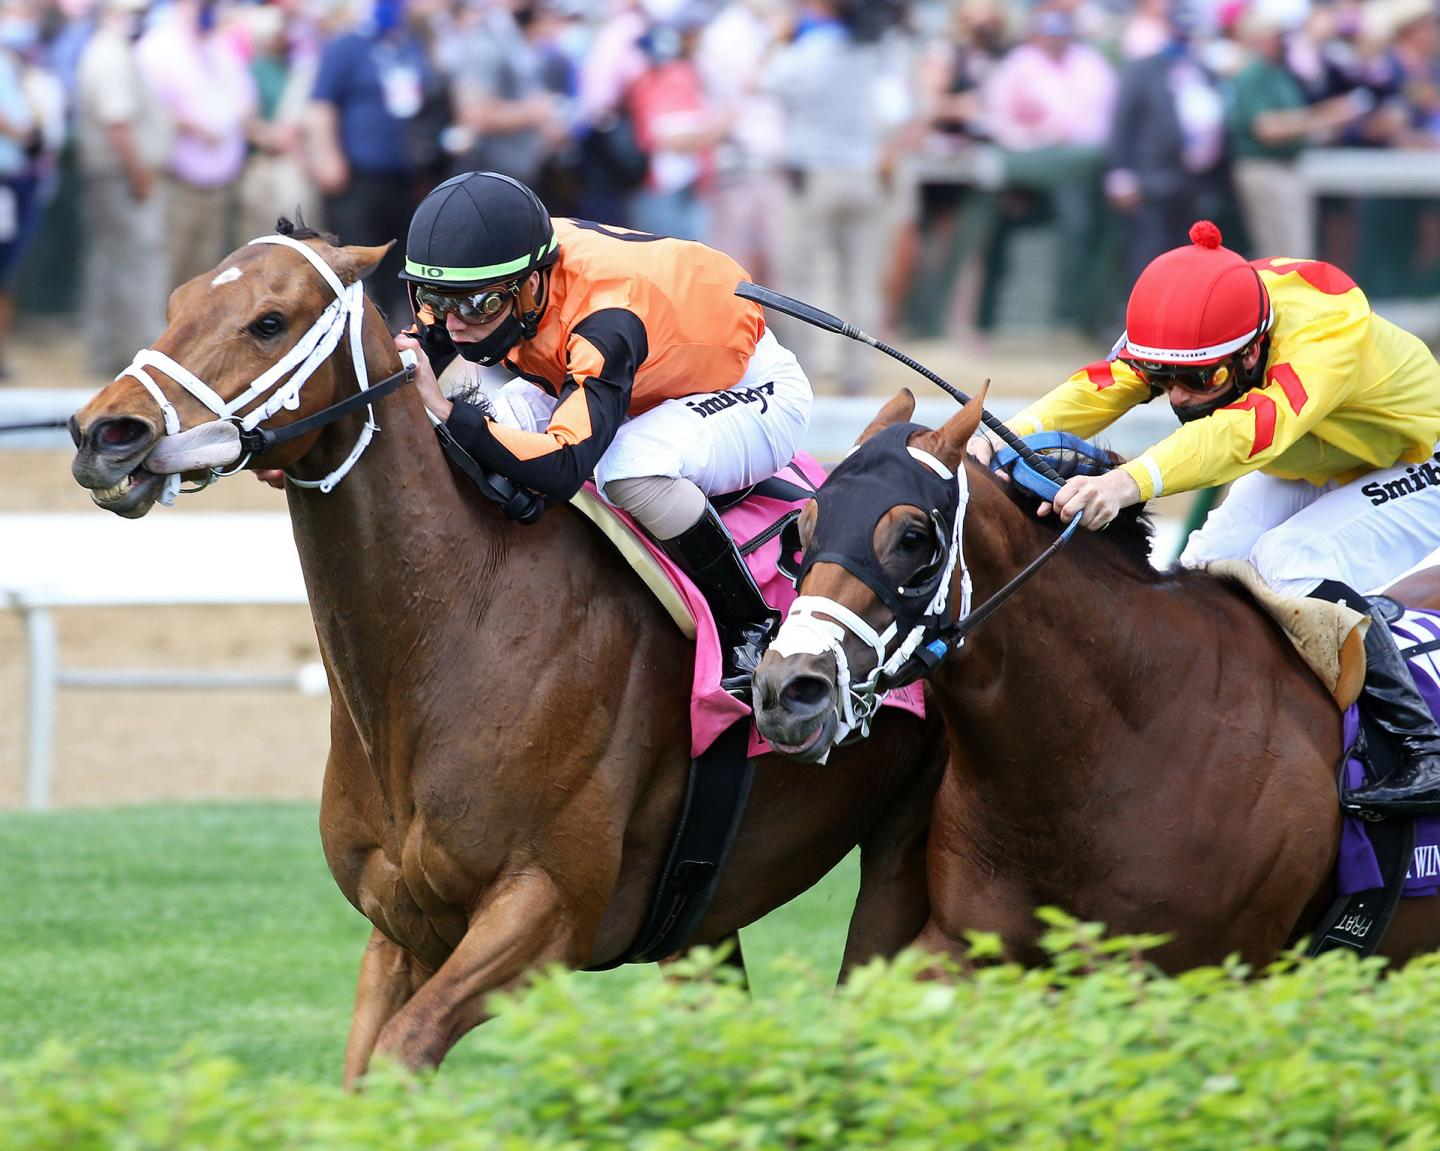 FAST-BOAT---The-Twin-Spires-Turf-Sprint-G2---04-30-21---R10---CD---Inside-Finish-01